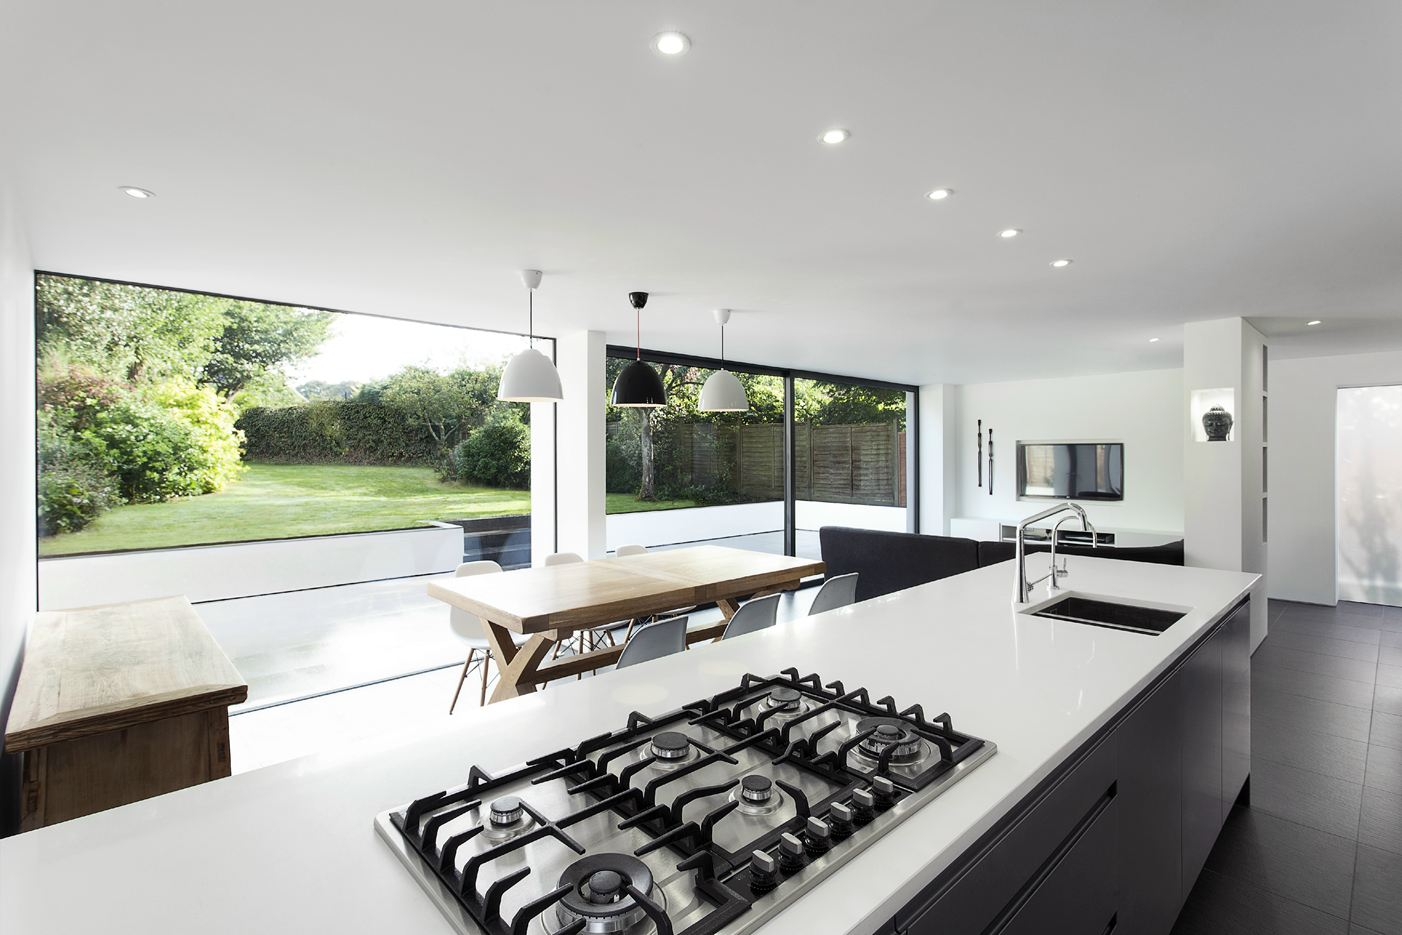 The Medic's House in Winchester, UK by AR Design Studio